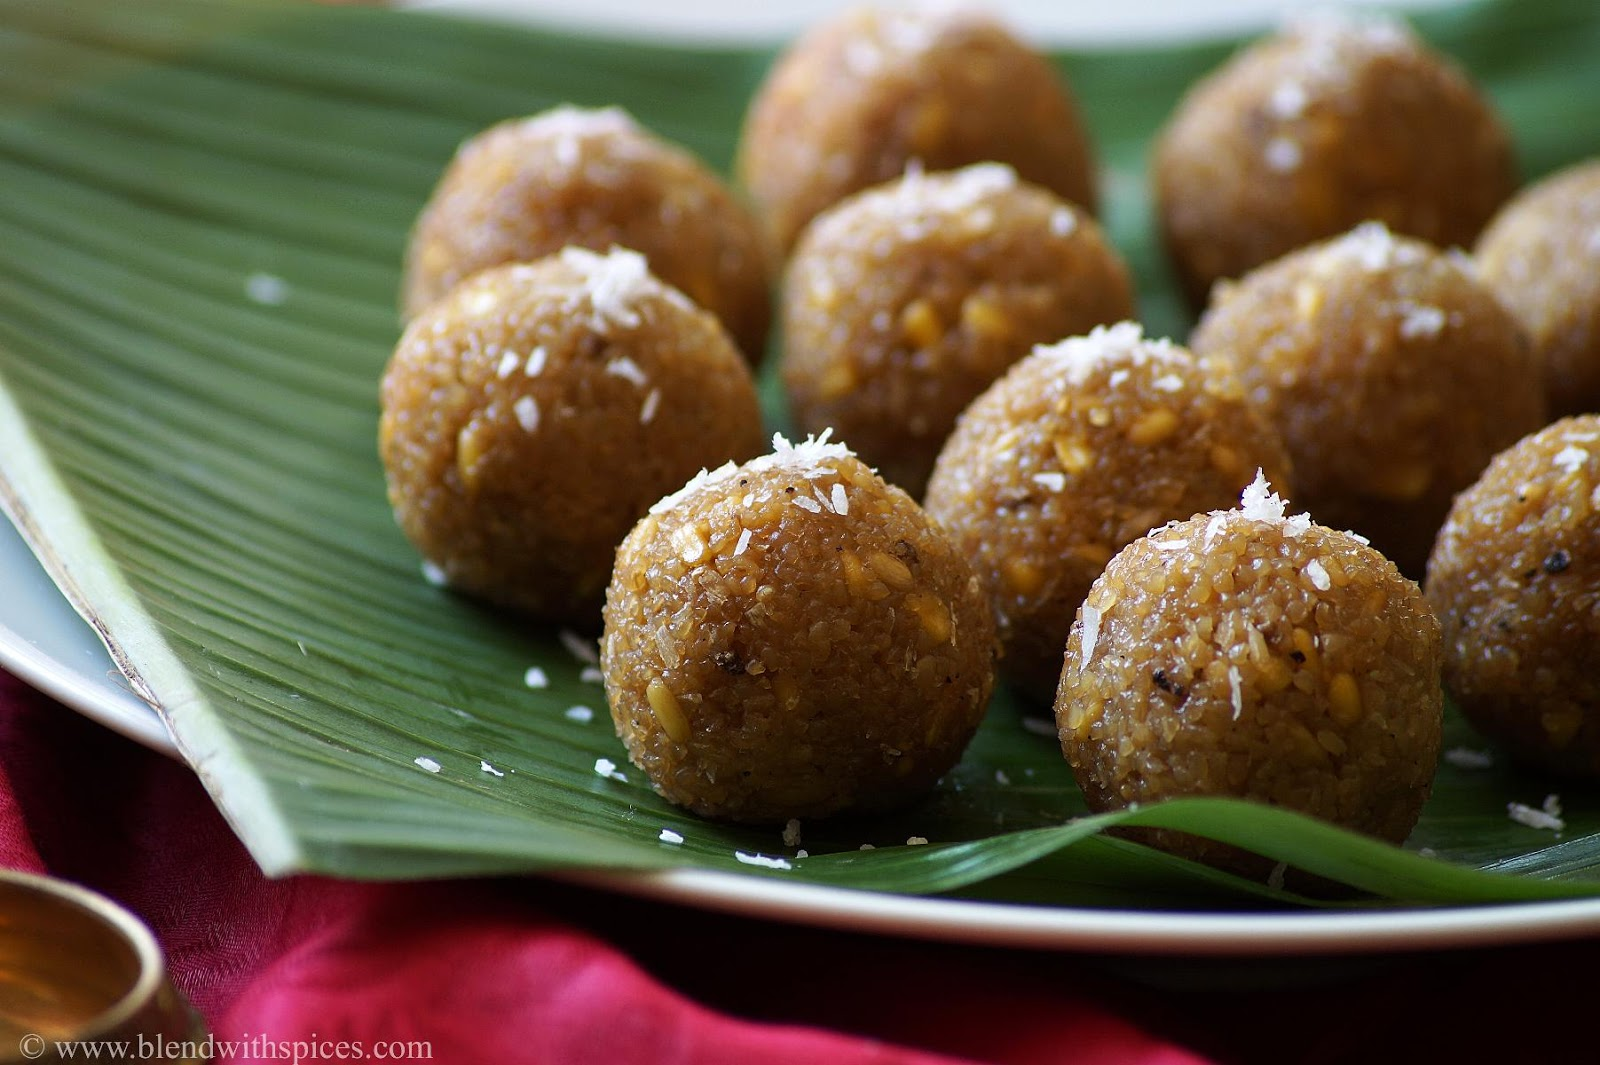 steamed jaggery dumplings garnished with coconut and served on a banana leaf during a festival.